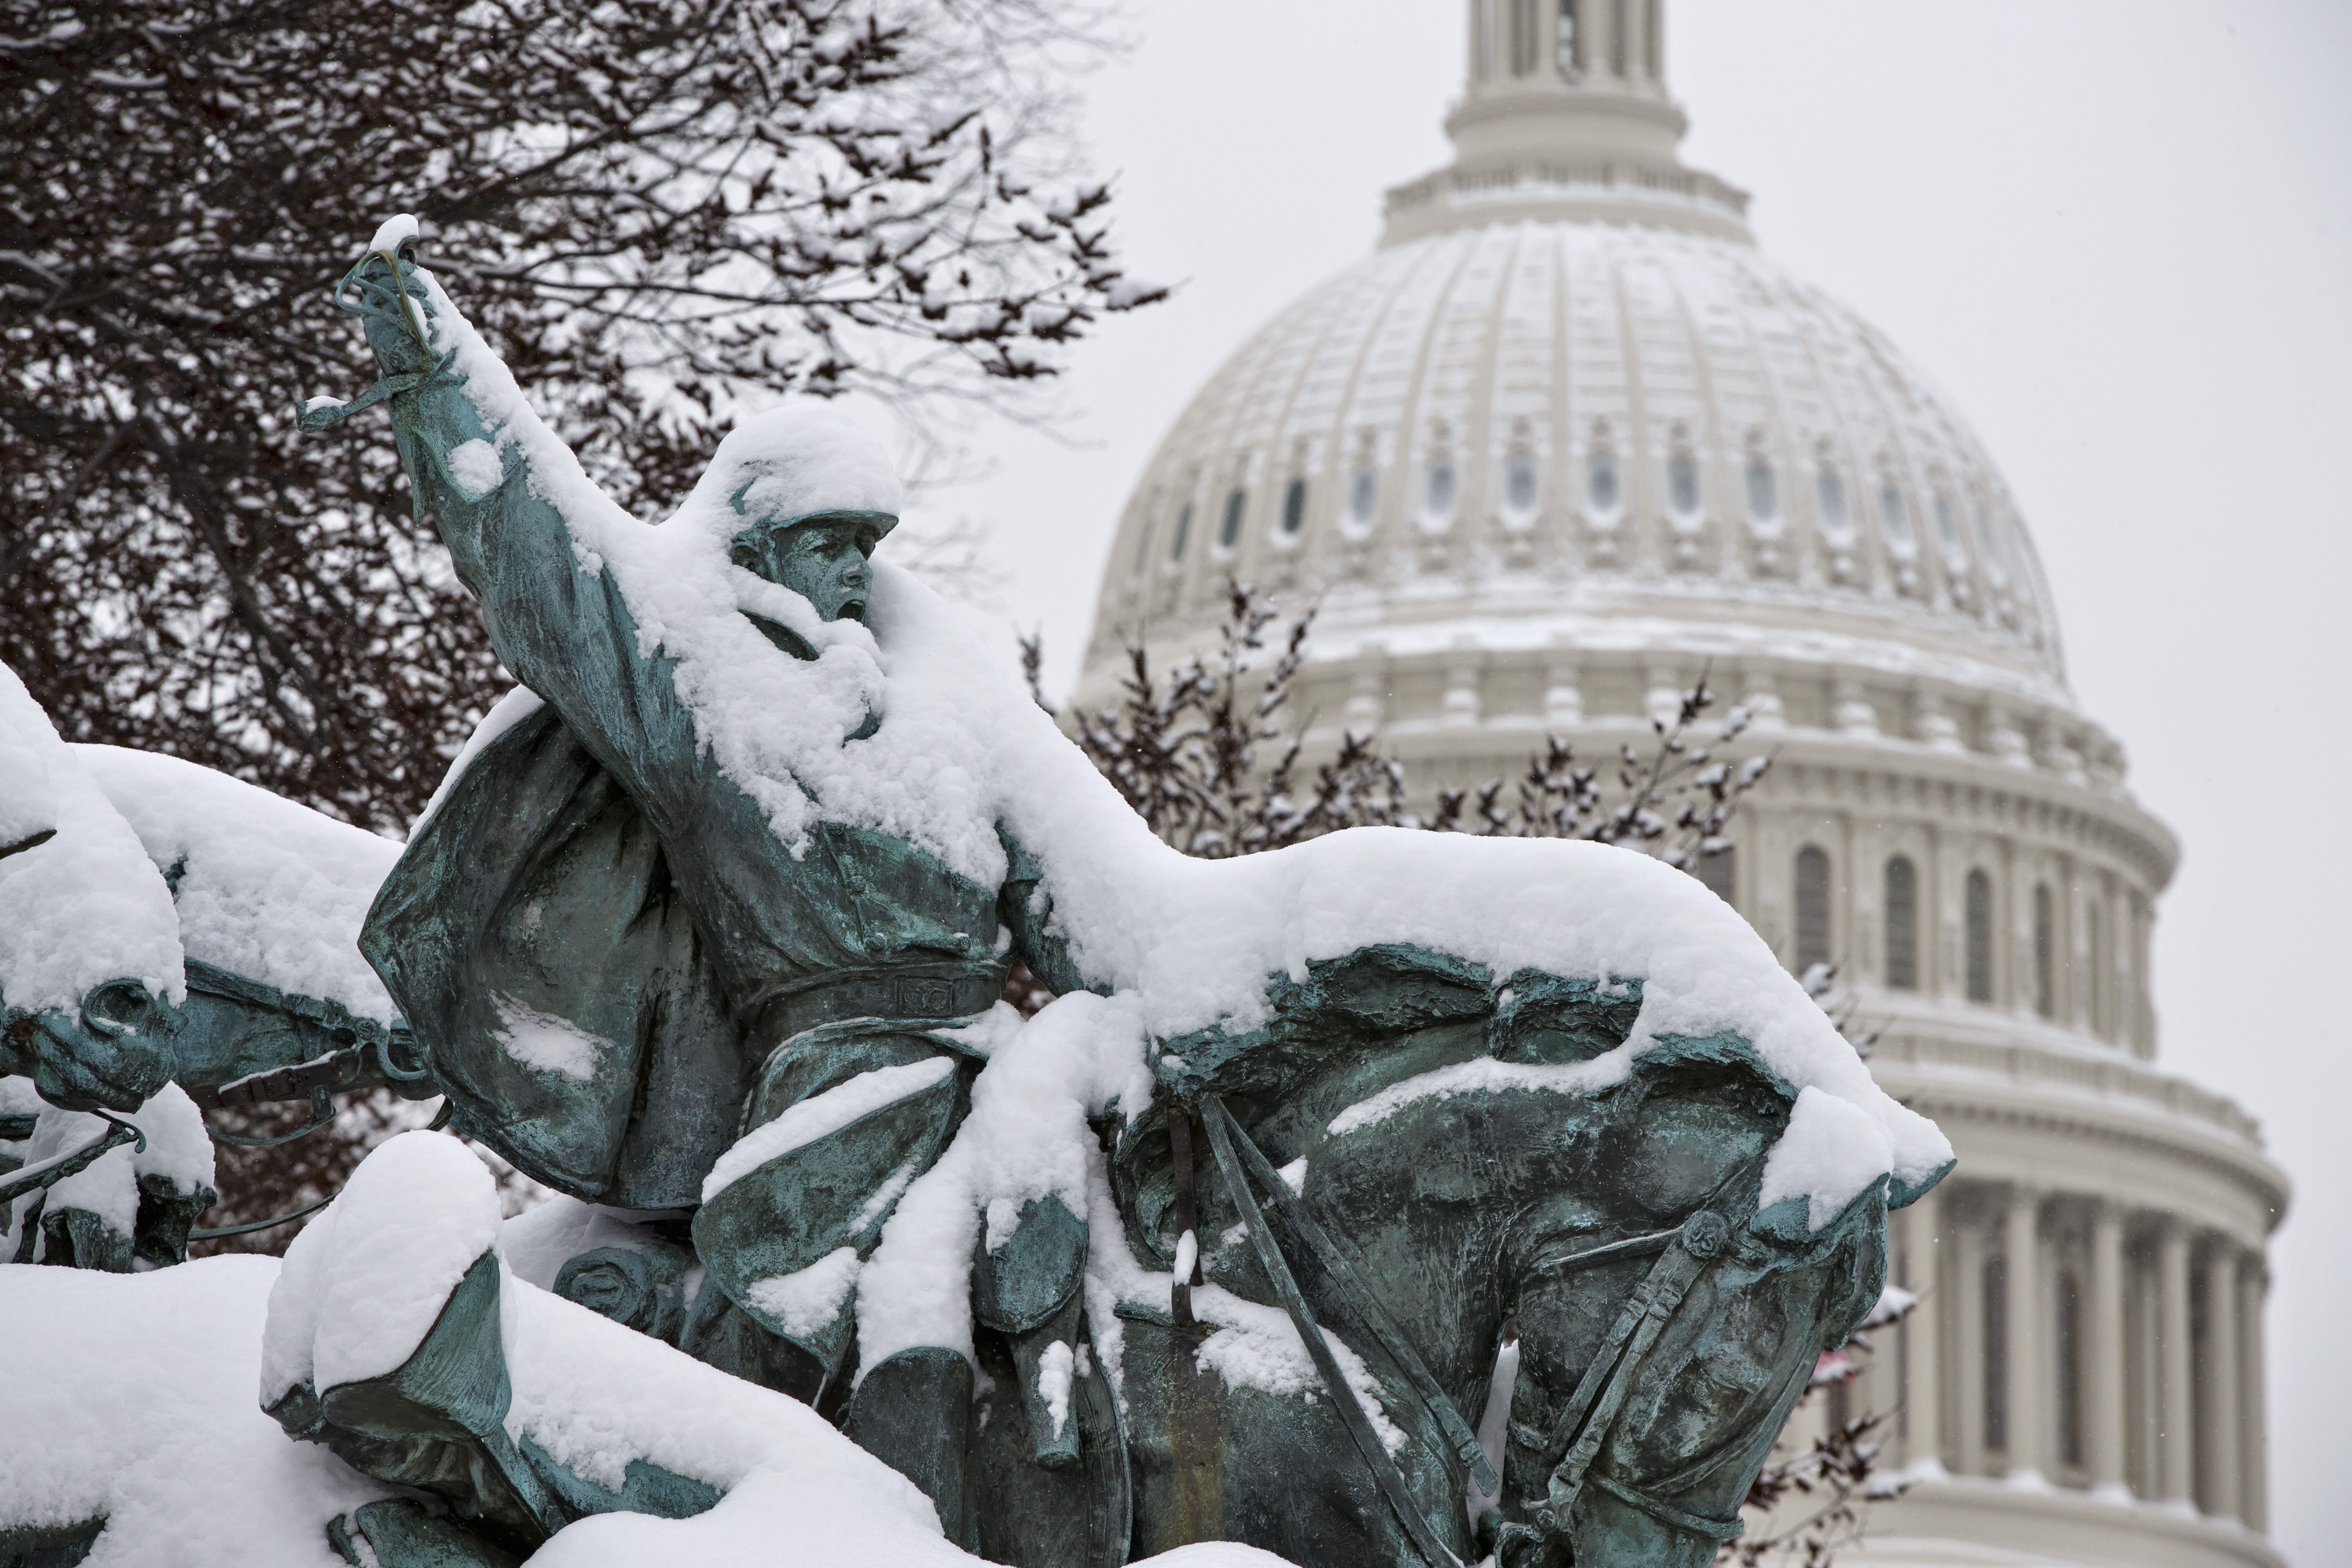 Blizzard Binge: What to watch during your snowed-in weekend